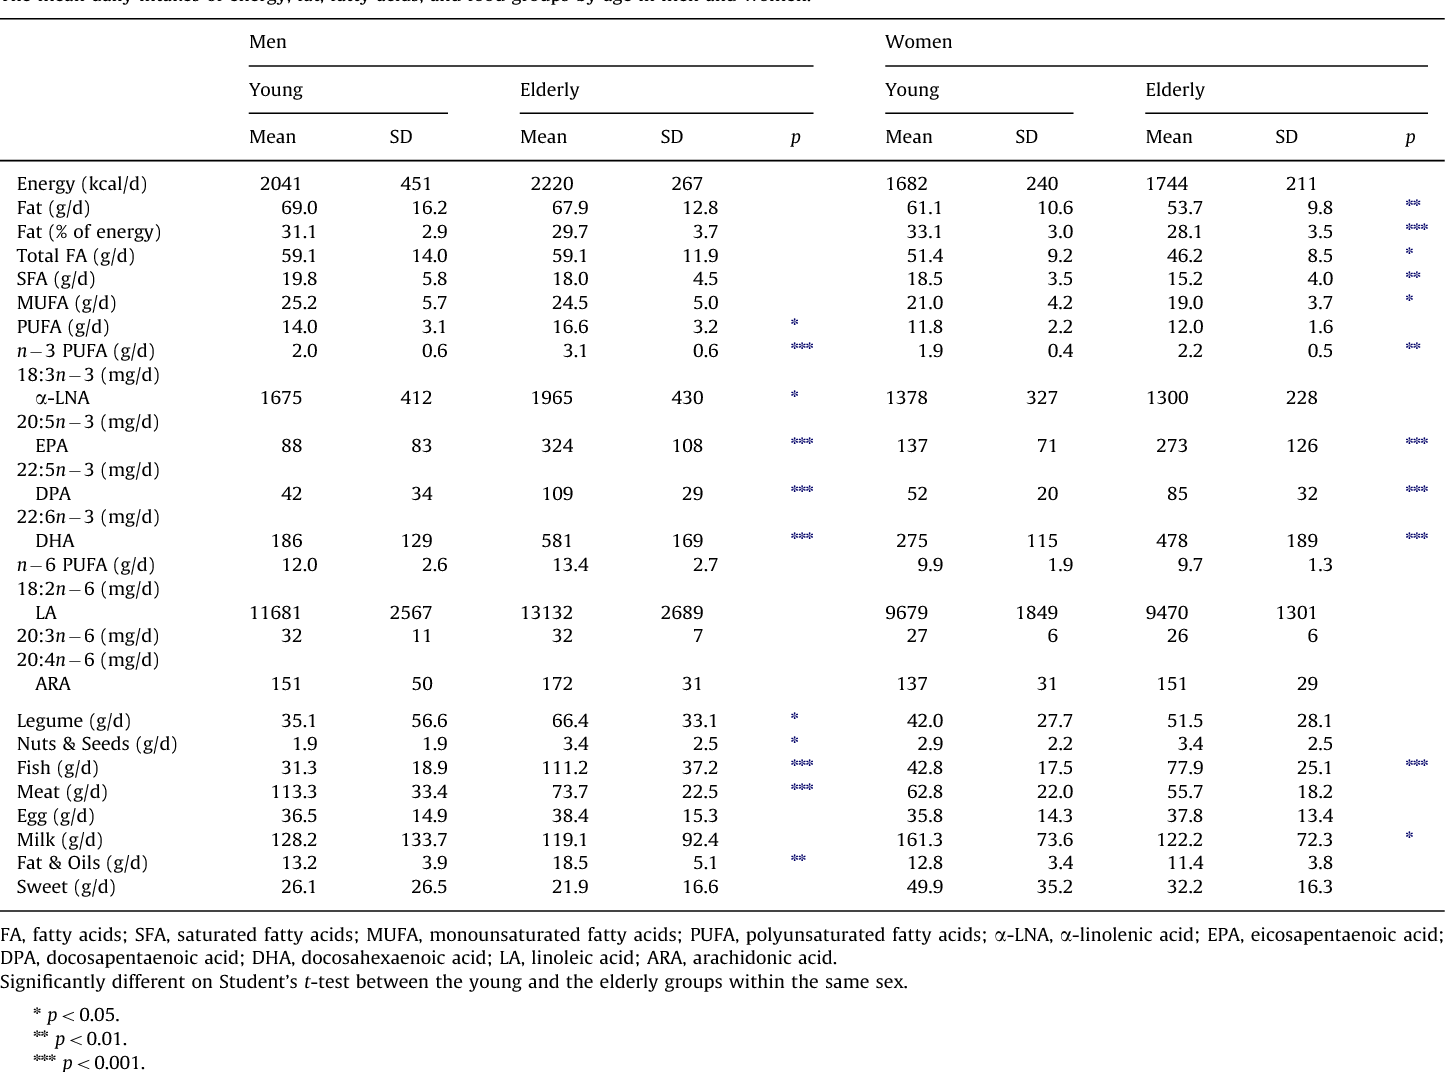 Table 1 The mean daily intakes of energy, fat, fatty acids, and food groups by age in men and women.